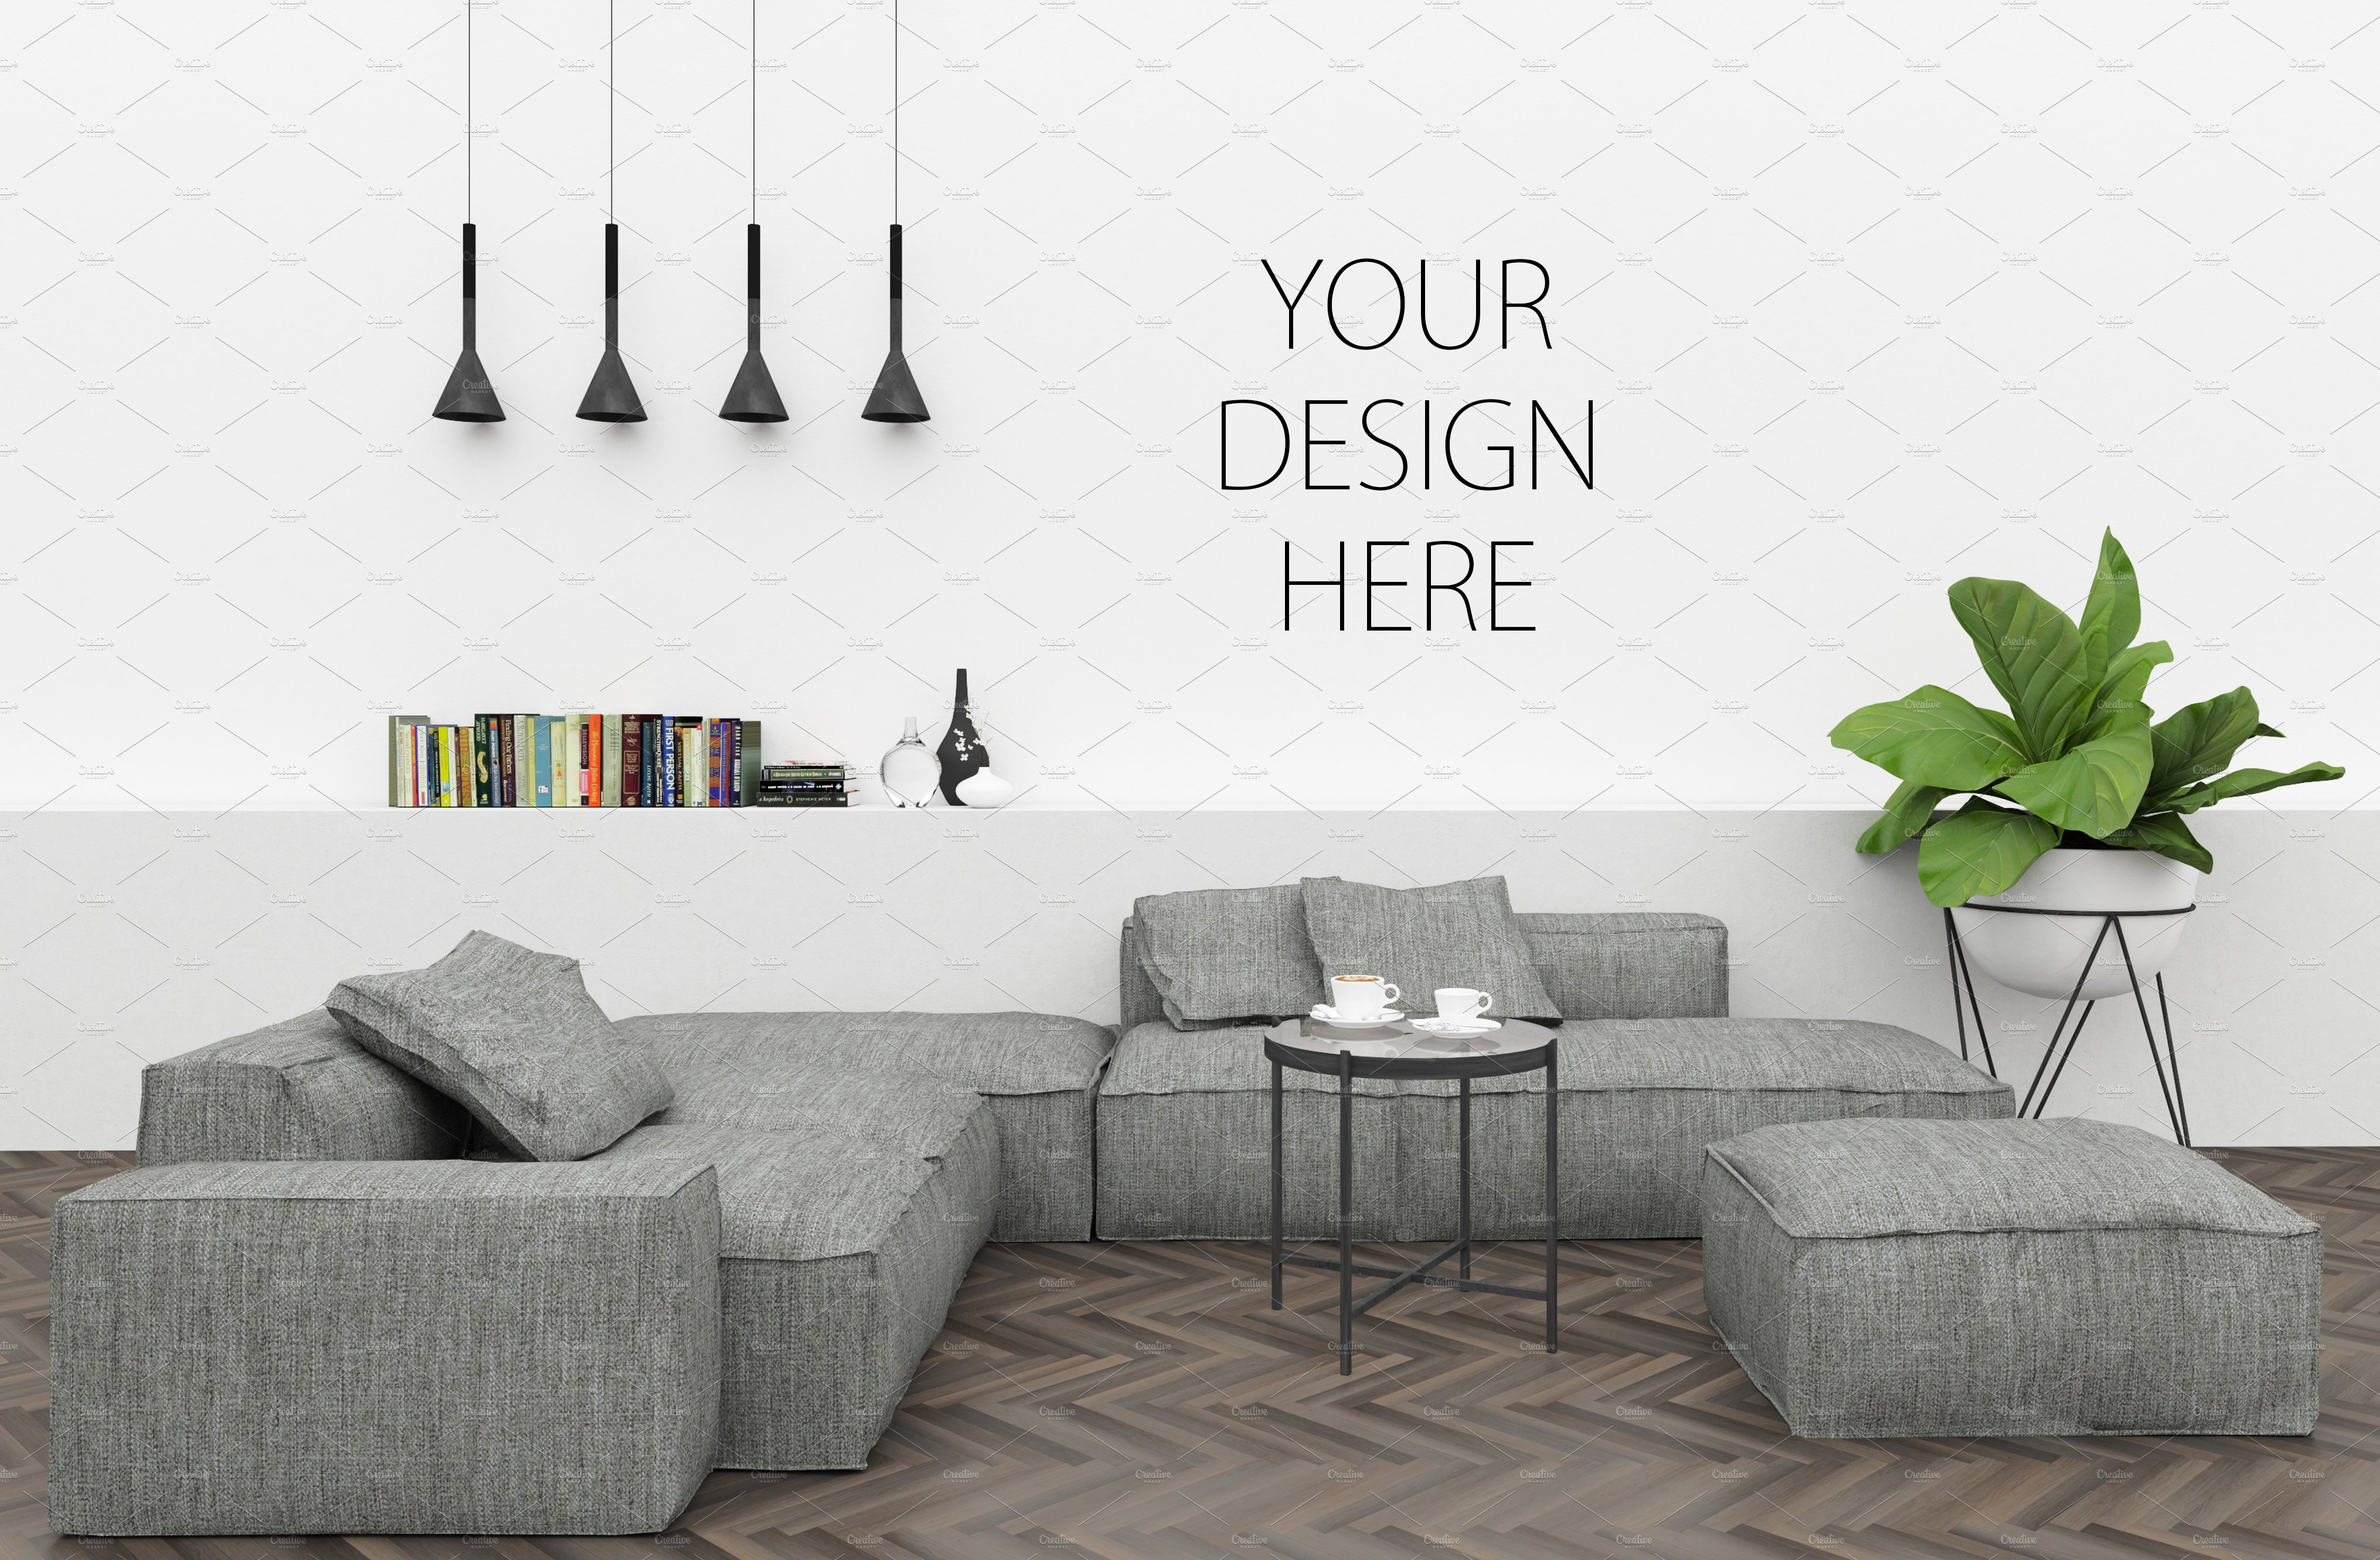 Blank wall mockup interior mockup product mockups - Interiors by design picture frames ...